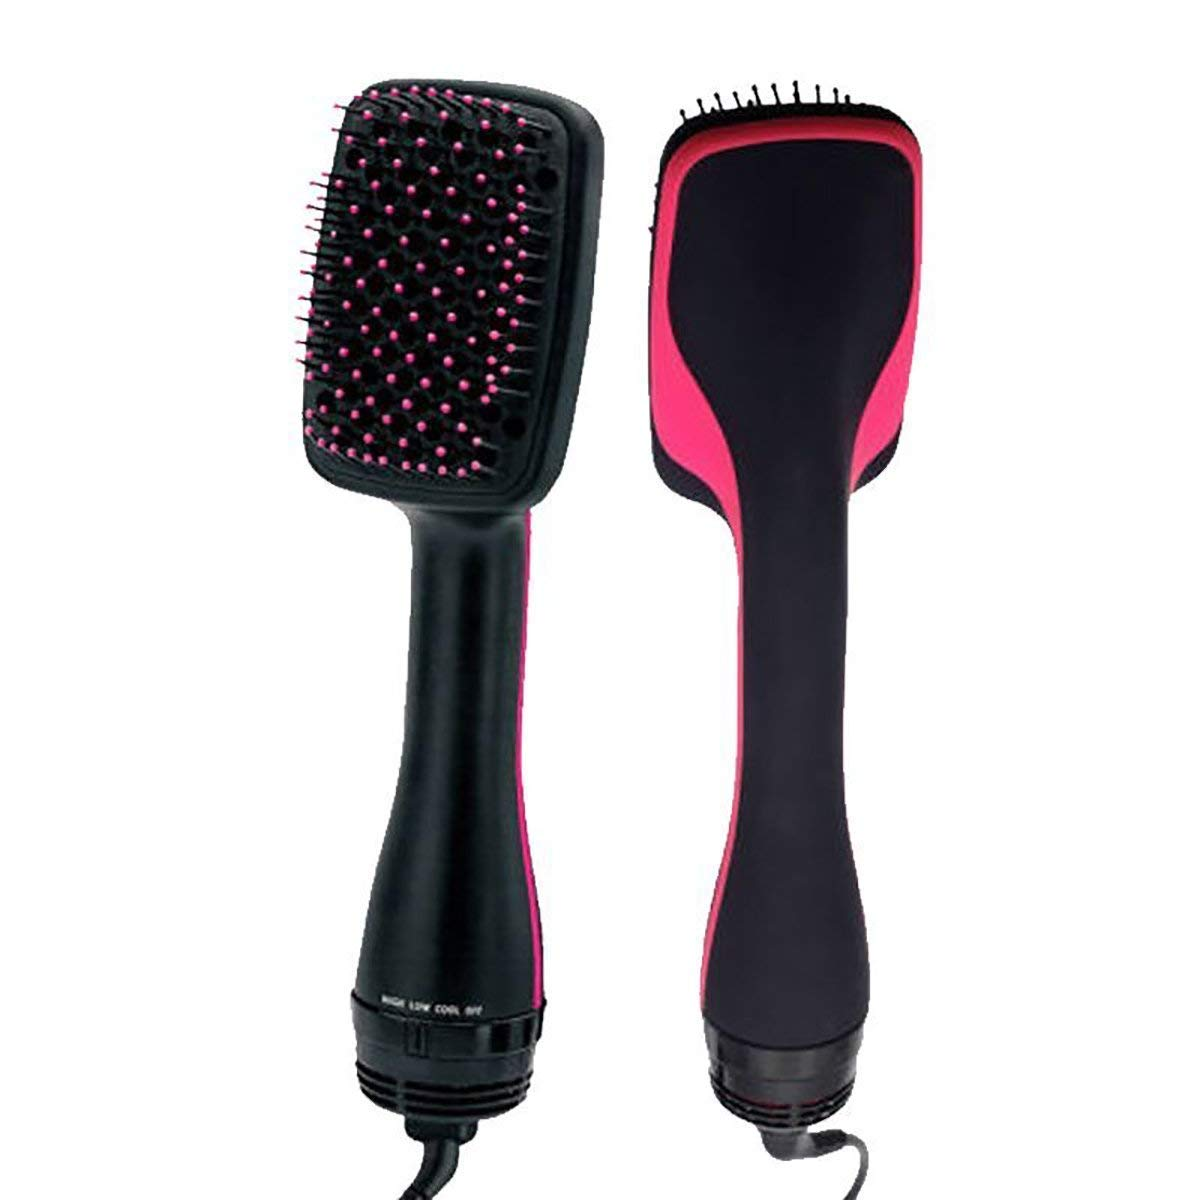 Salon One-Step Hair Dryer & Styler, 2-in-1 Negative Ion Hot and Cool Air Blower Comb Straightening Brusher, Pink/Black Color Wbest